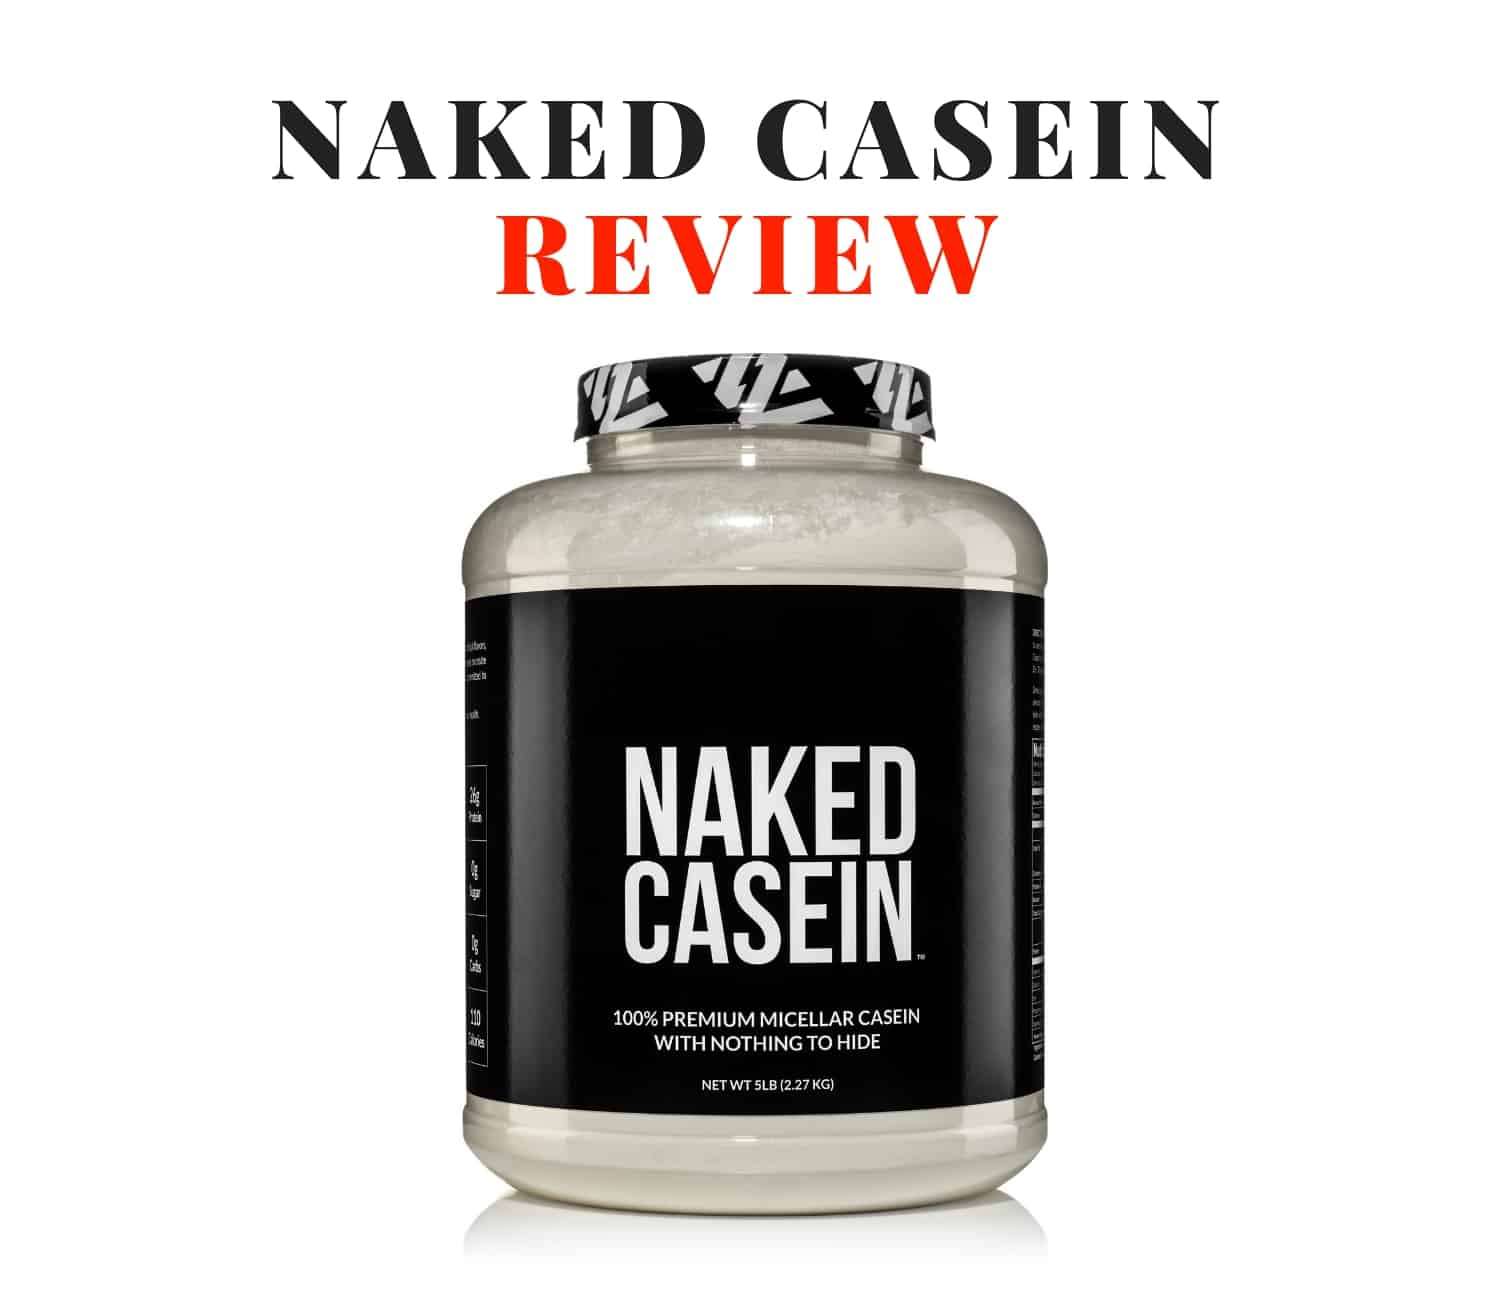 Naked Casein Review – All You Need to Know